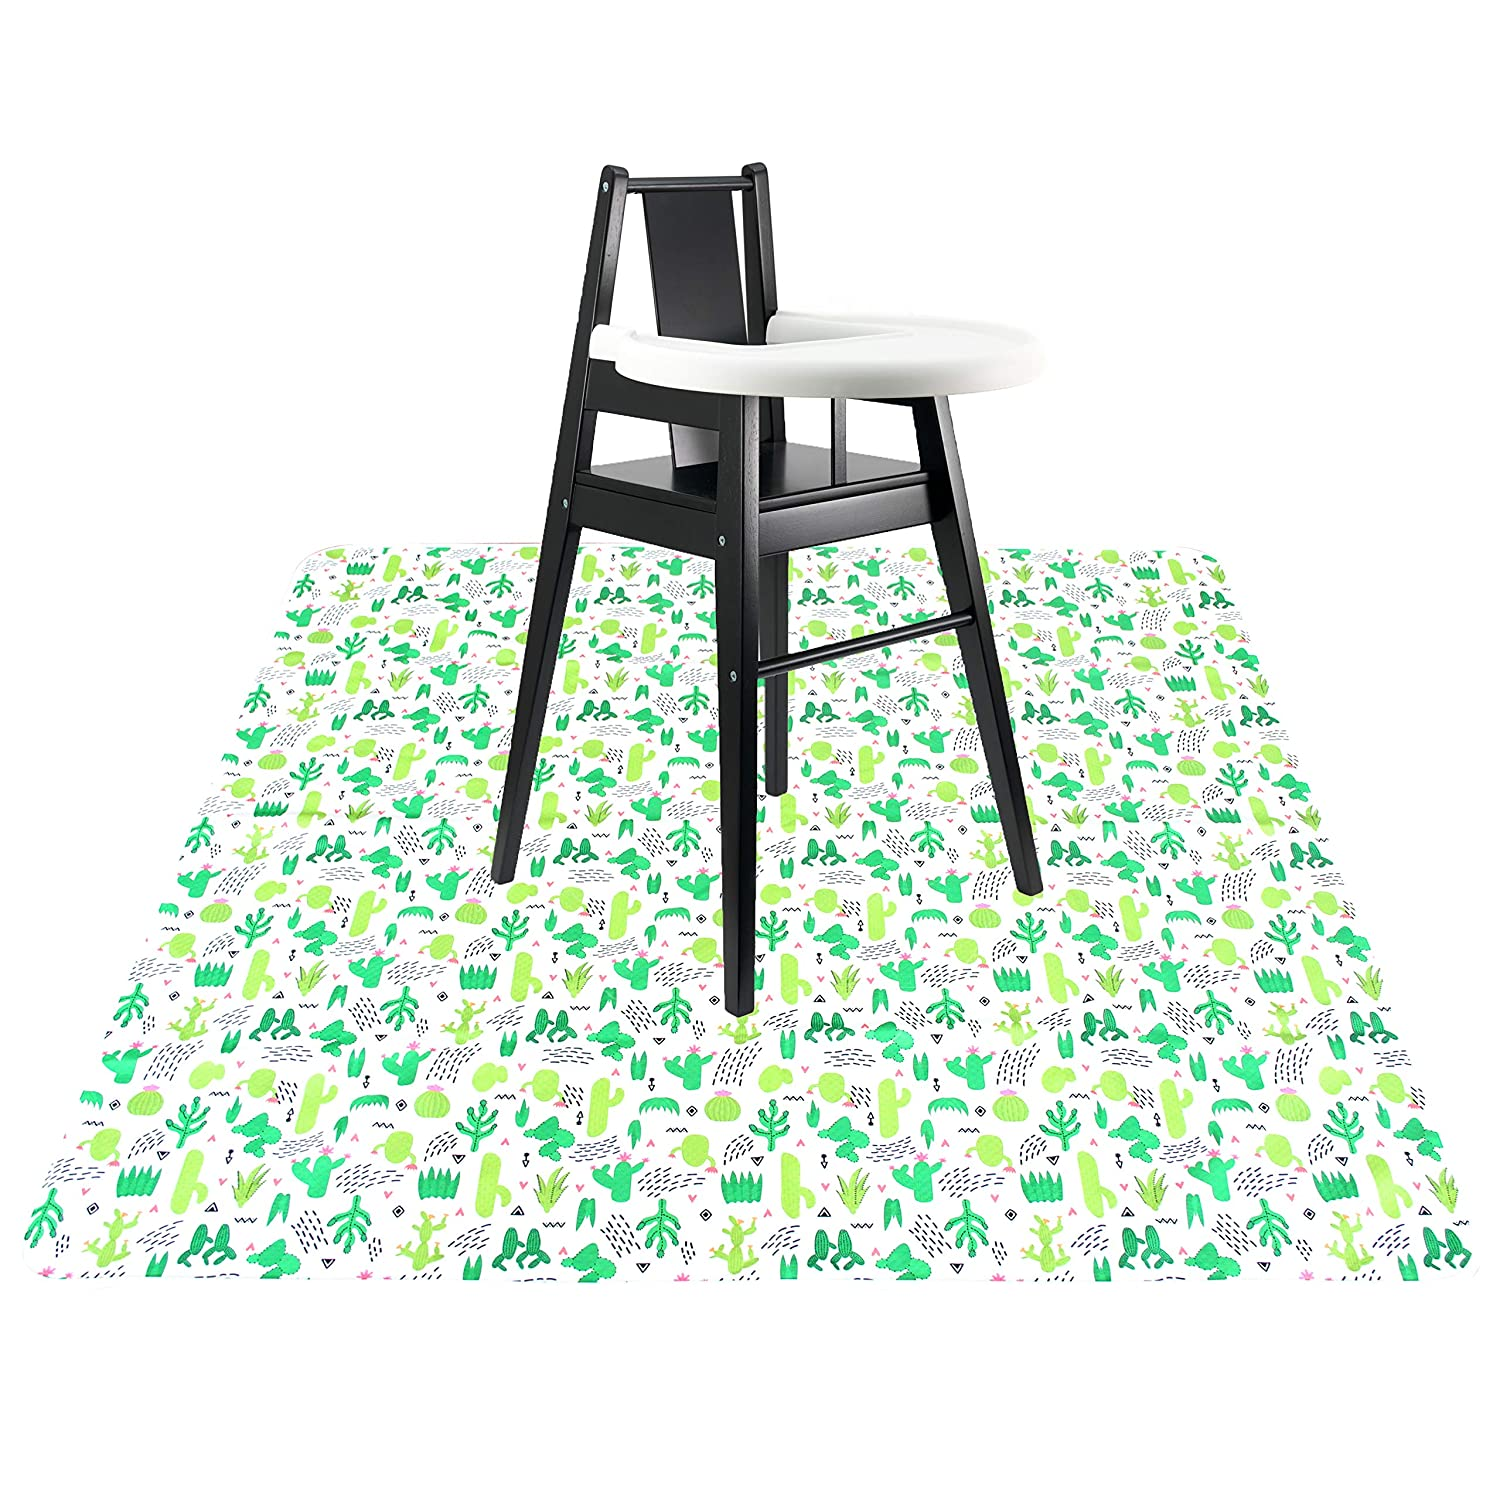 Langsprit 53 Splat Mat for Under High Chair Washable Splash Mat Anti-Slip Mess Mat Portable Play Mat,Table Cloth for Art//Crafts,Cactus